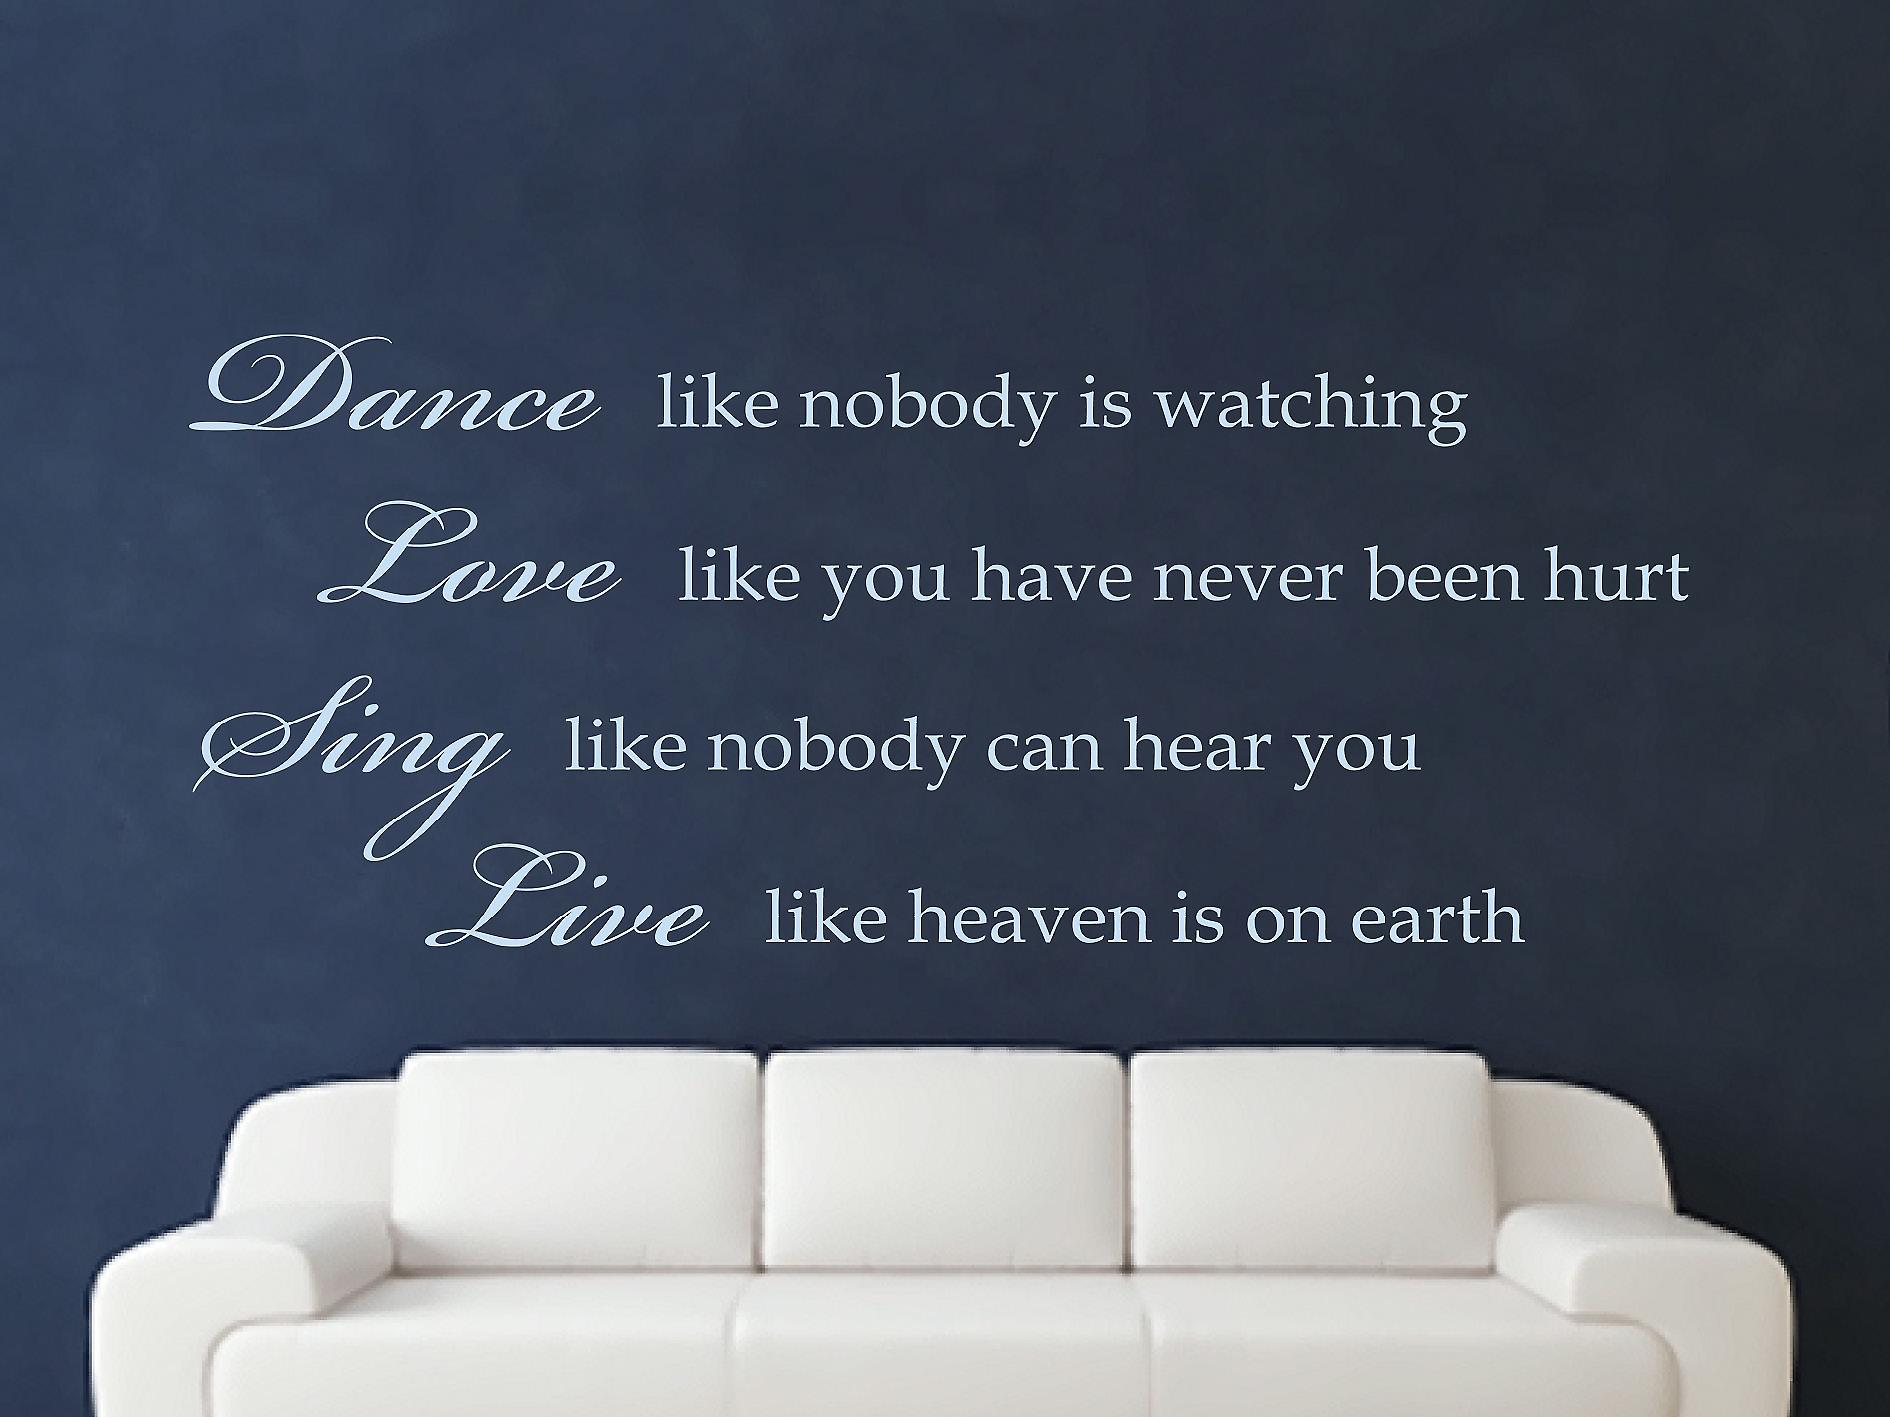 Dance Like Nobody Is Watching Wall Art Sticker - Pastel Blue